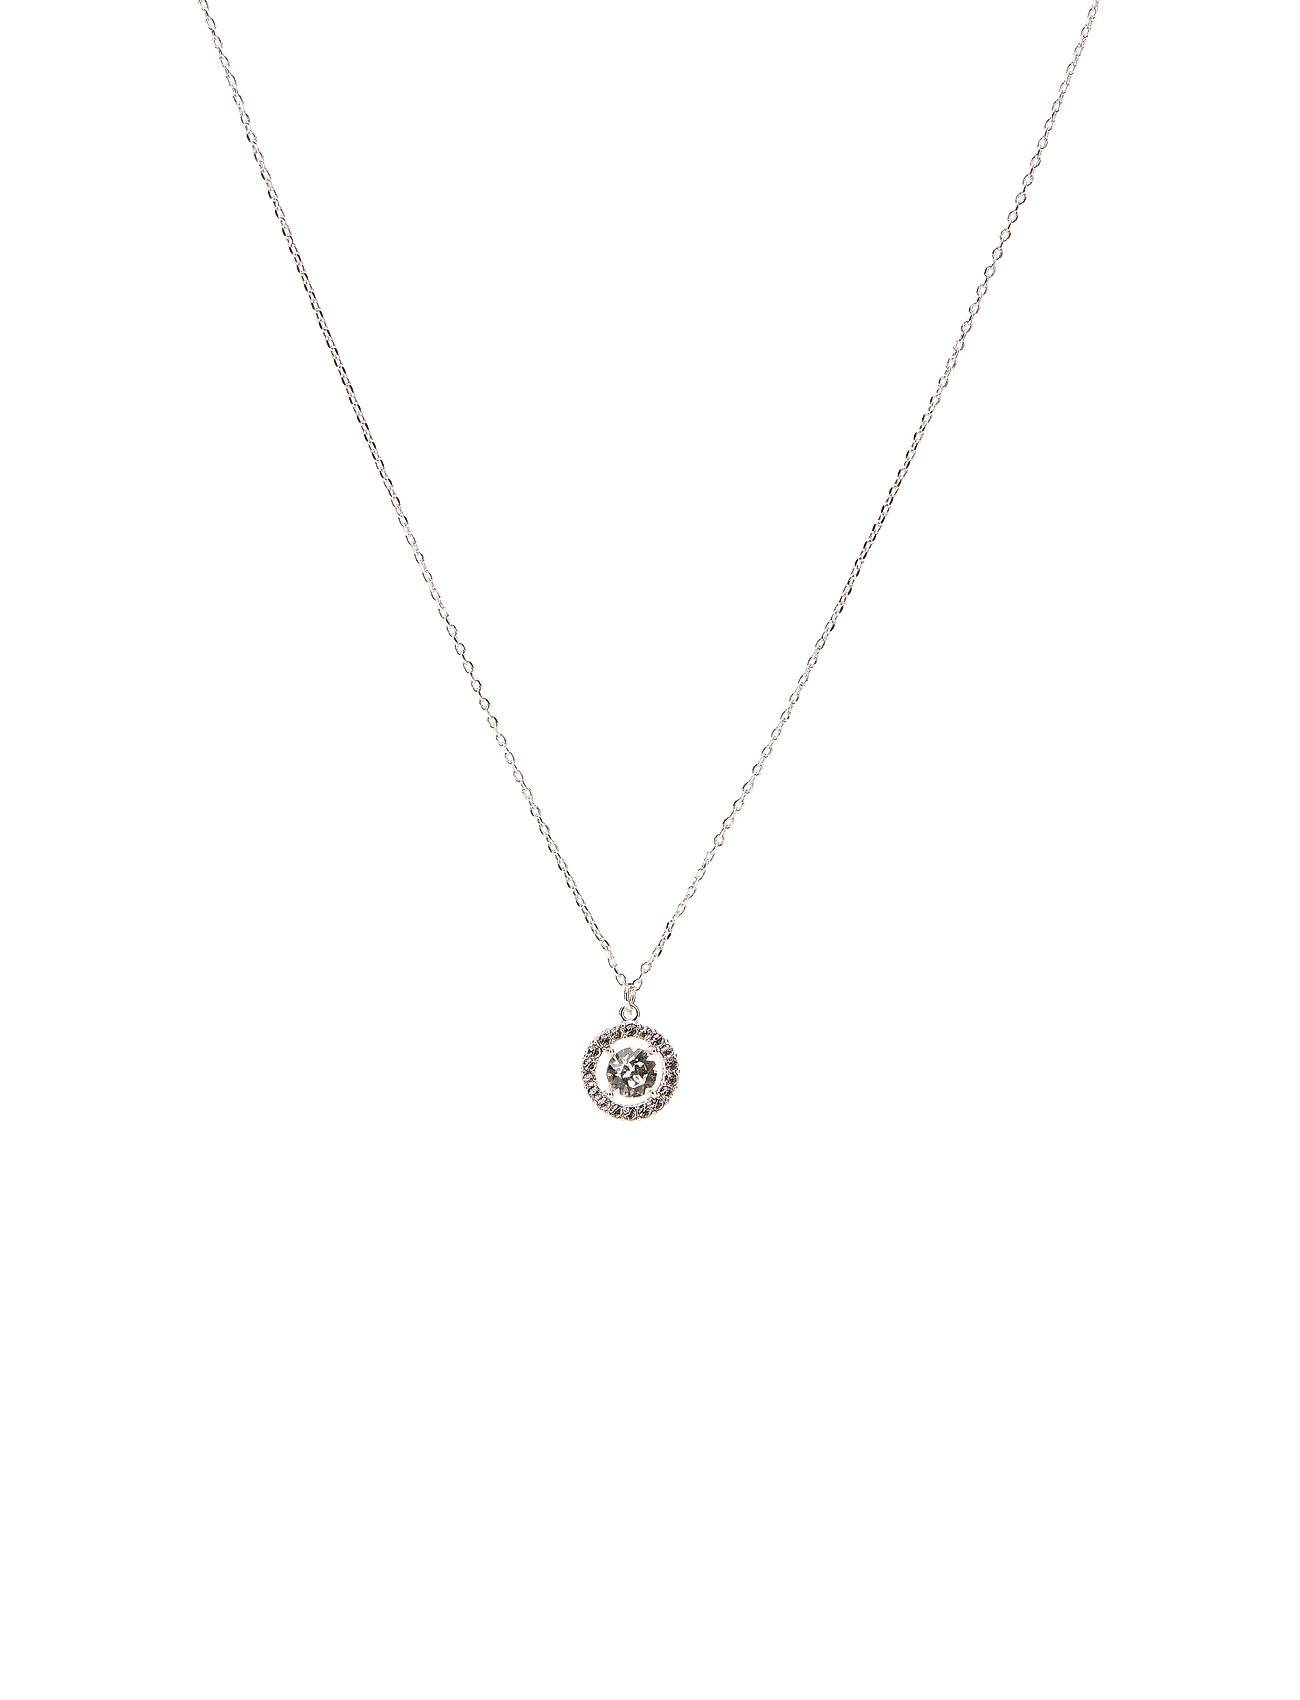 LILY AND ROSE Miss Miranda Necklace - Crystal Accessories Jewellery Necklaces Dainty Necklaces Hopea LILY AND ROSE